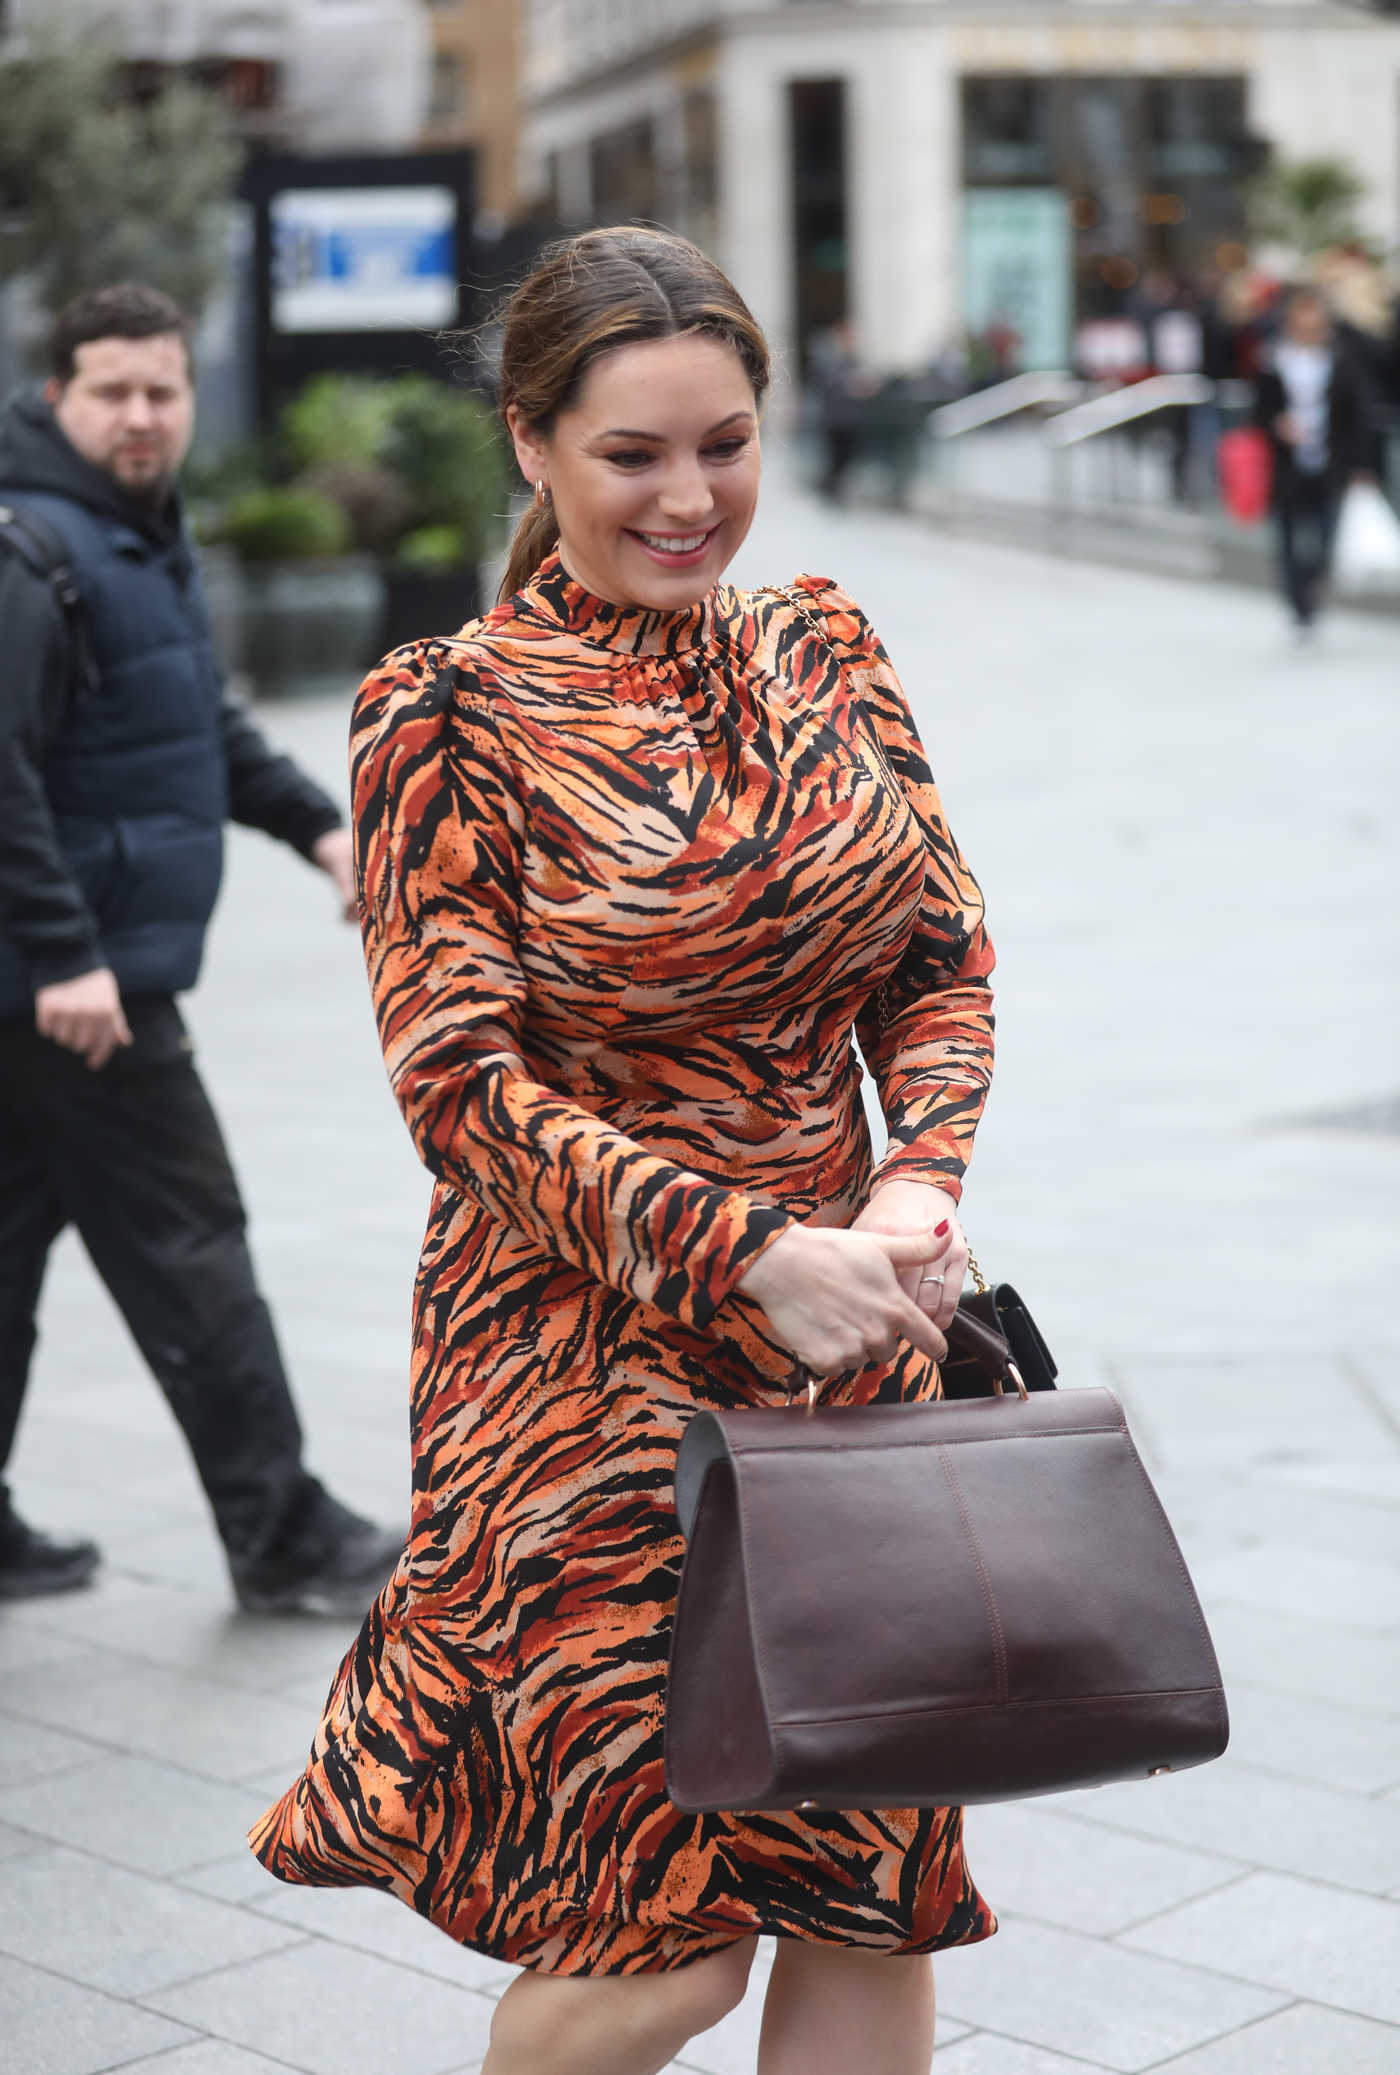 Kelly Brook in a Leopard Print Dress Arrives at Global Radio Studios in London 03/15/2019